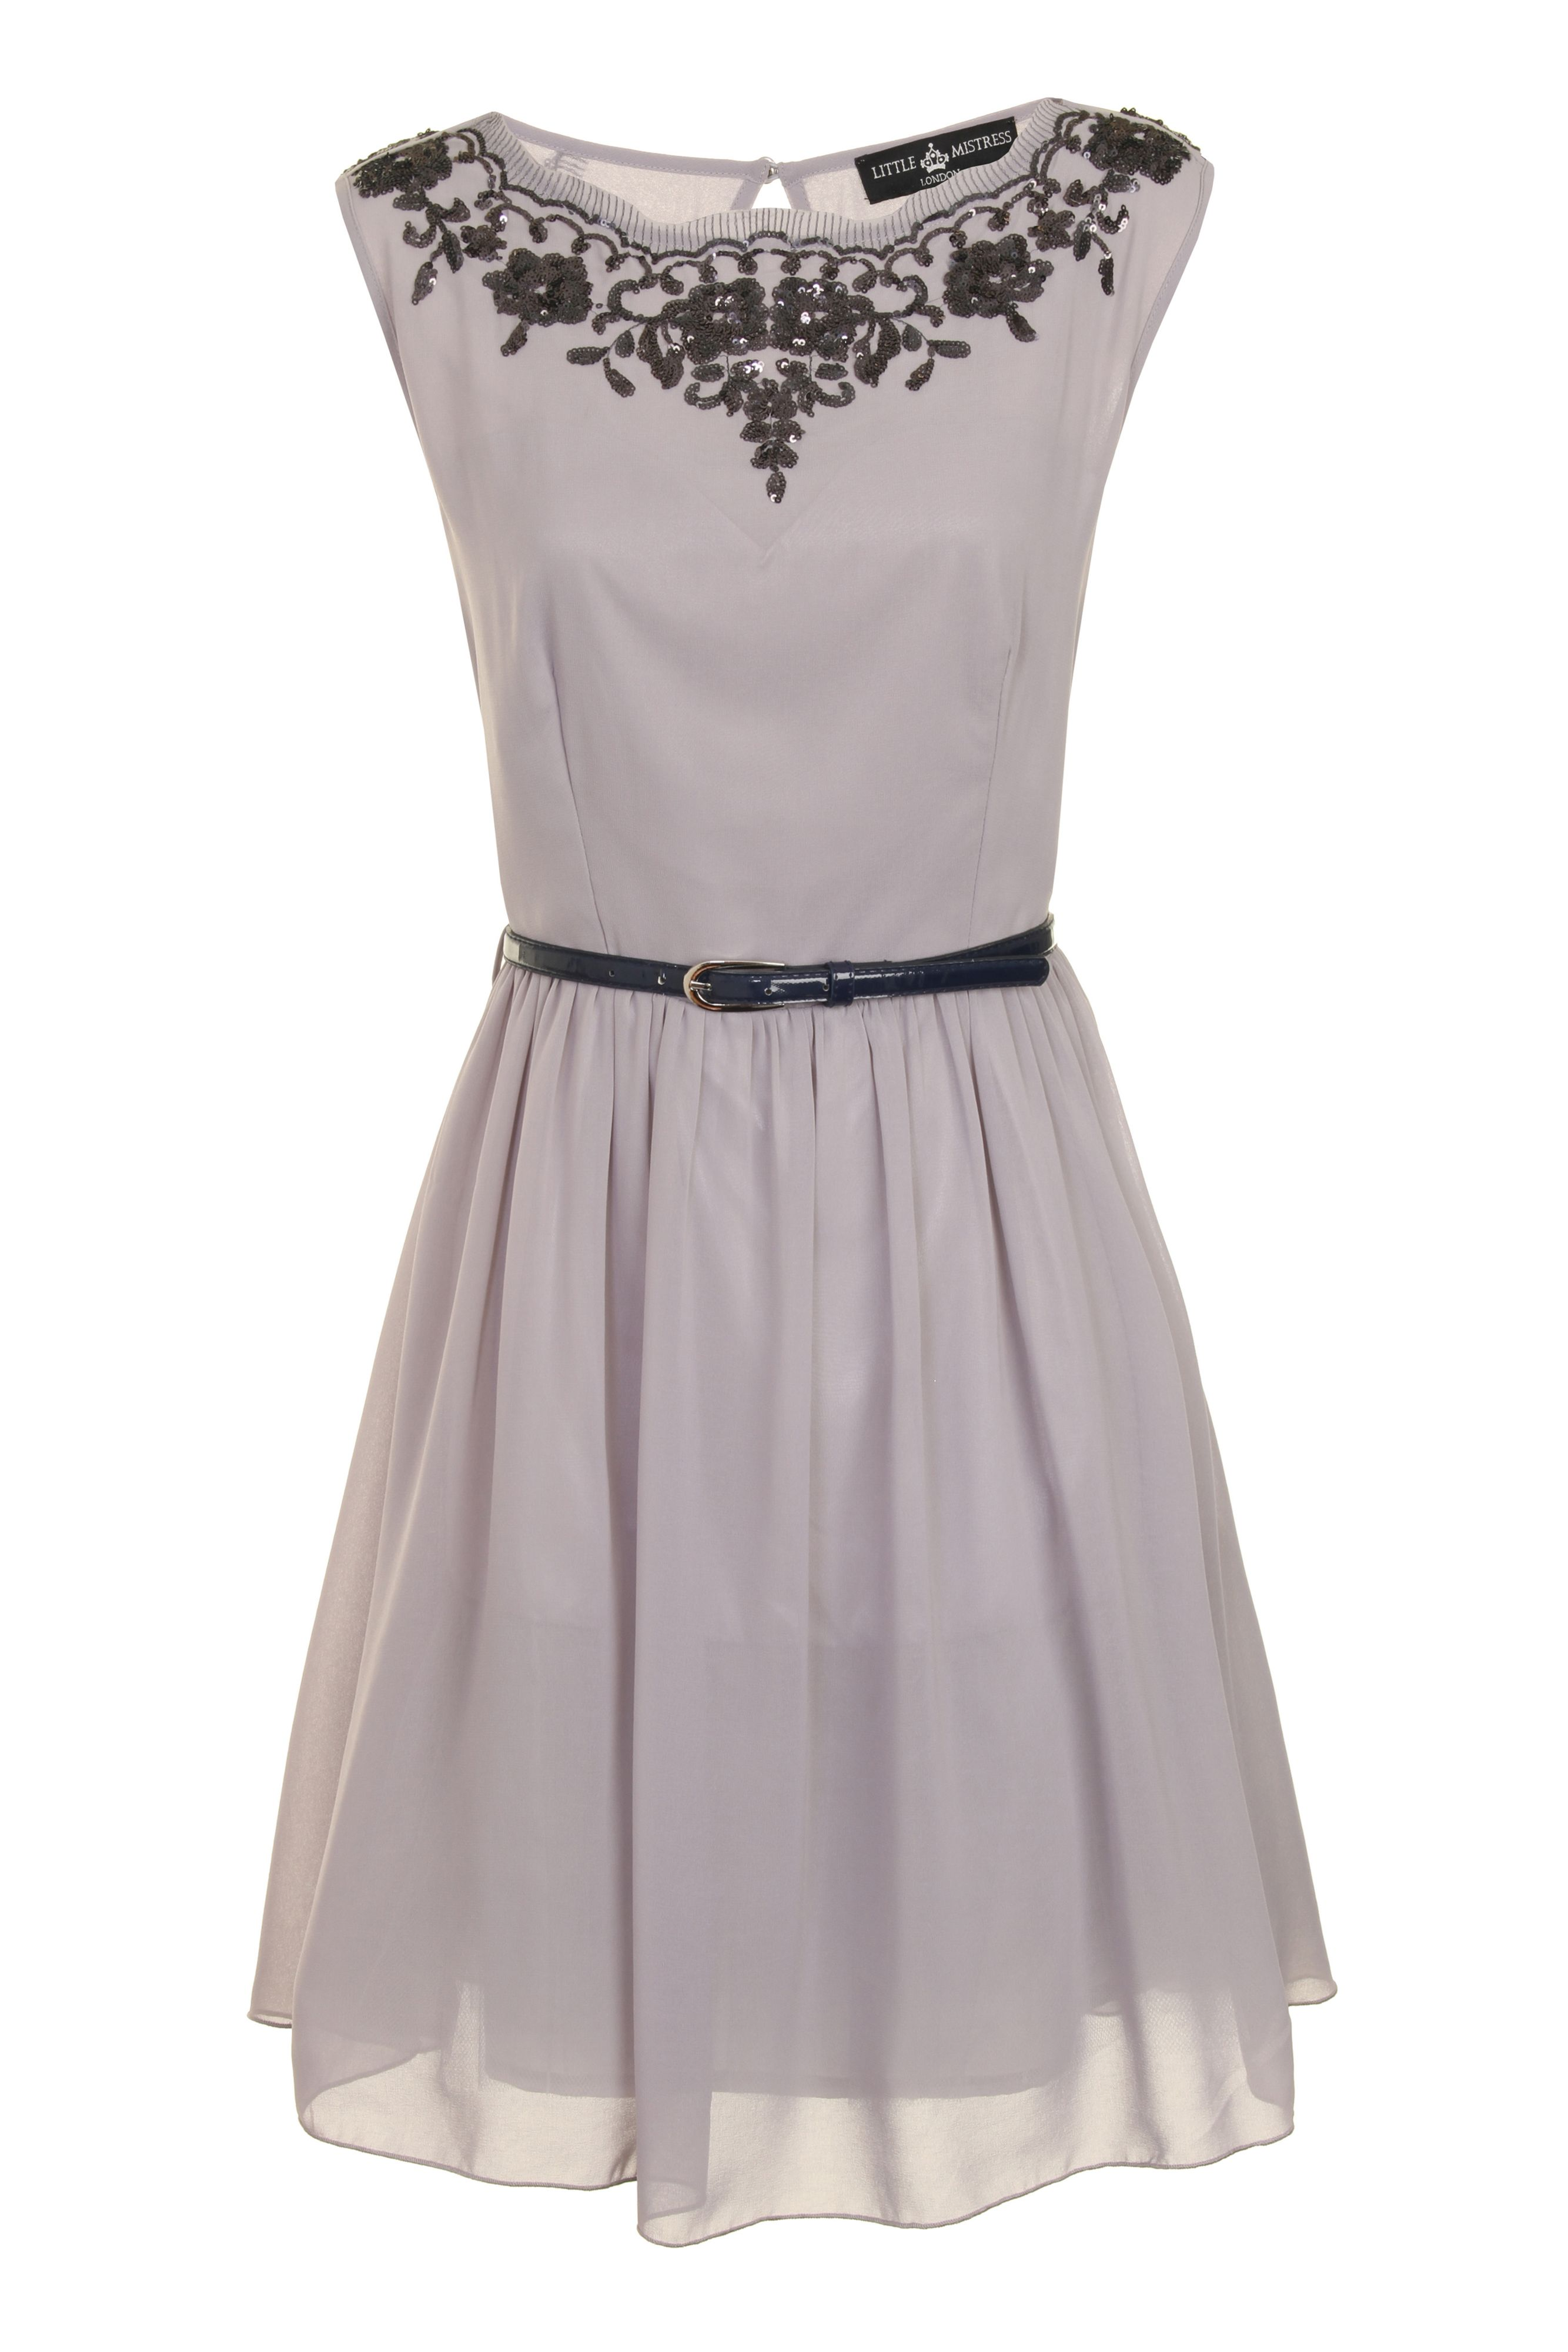 Little Mistress Slash Neck Fit And Flare Dress In Gray